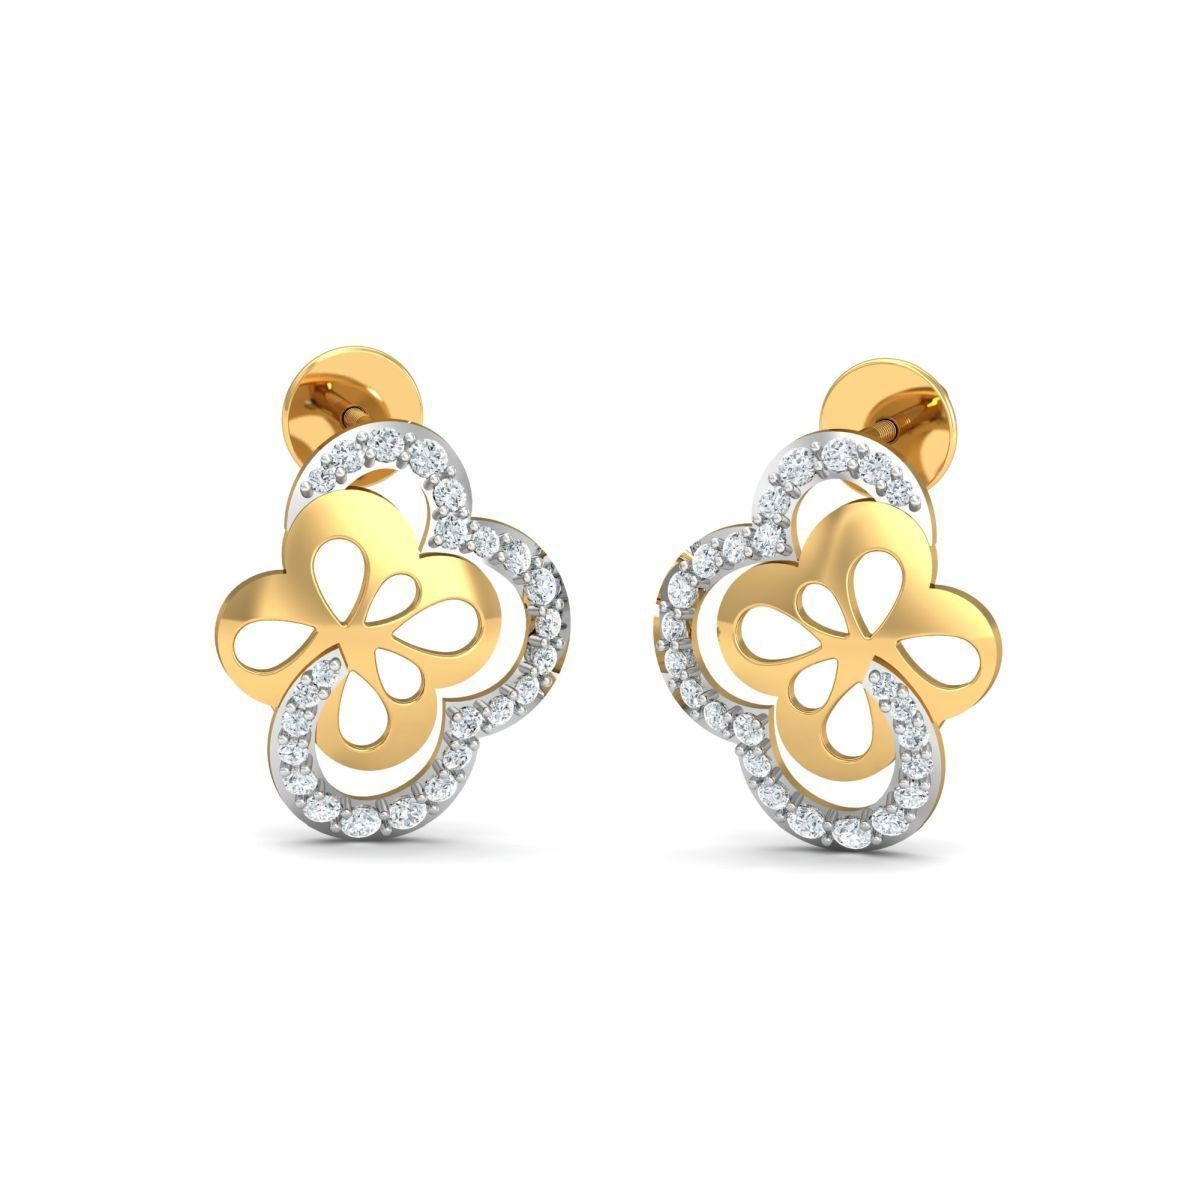 Diamoire Jewels 18kt Yellow Gold 0.30ct Pave Diamond Infinity Earrings eZjjW0ch